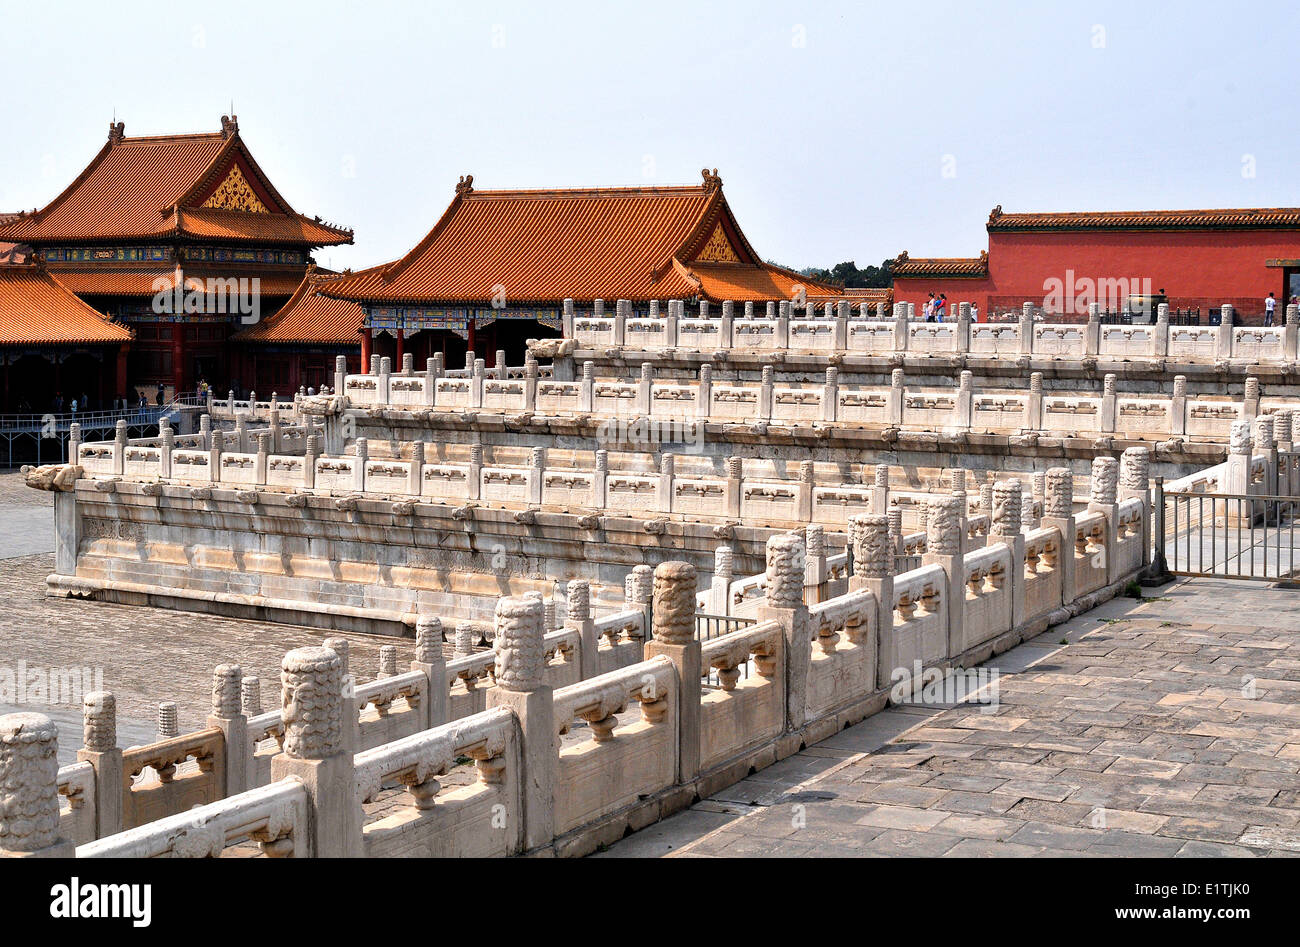 The Forbidden city Beijing China - Stock Image